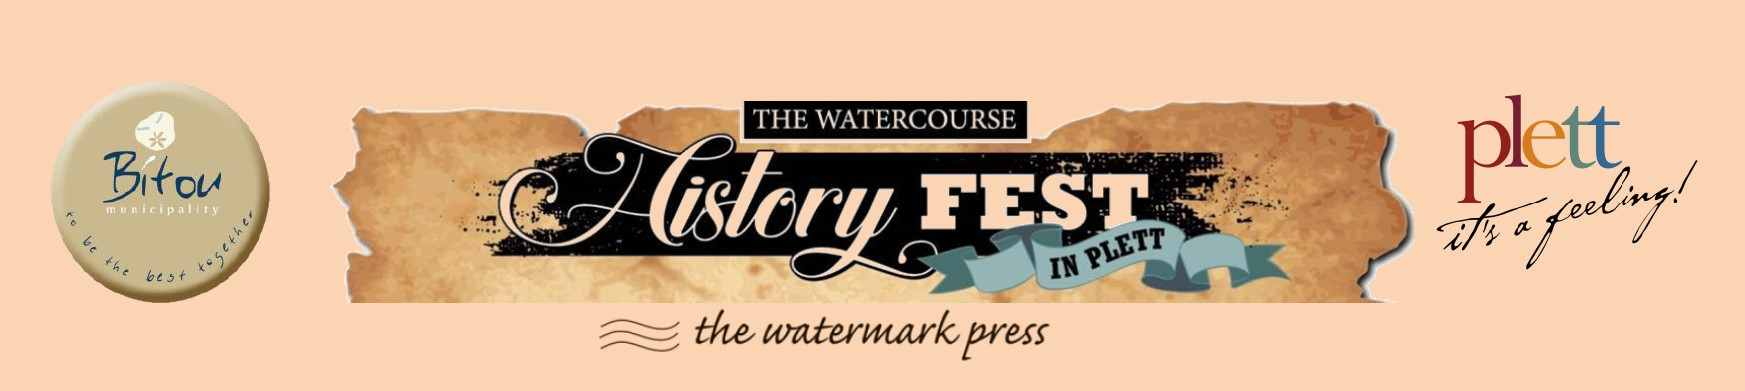 Watercourse History Fest 2021